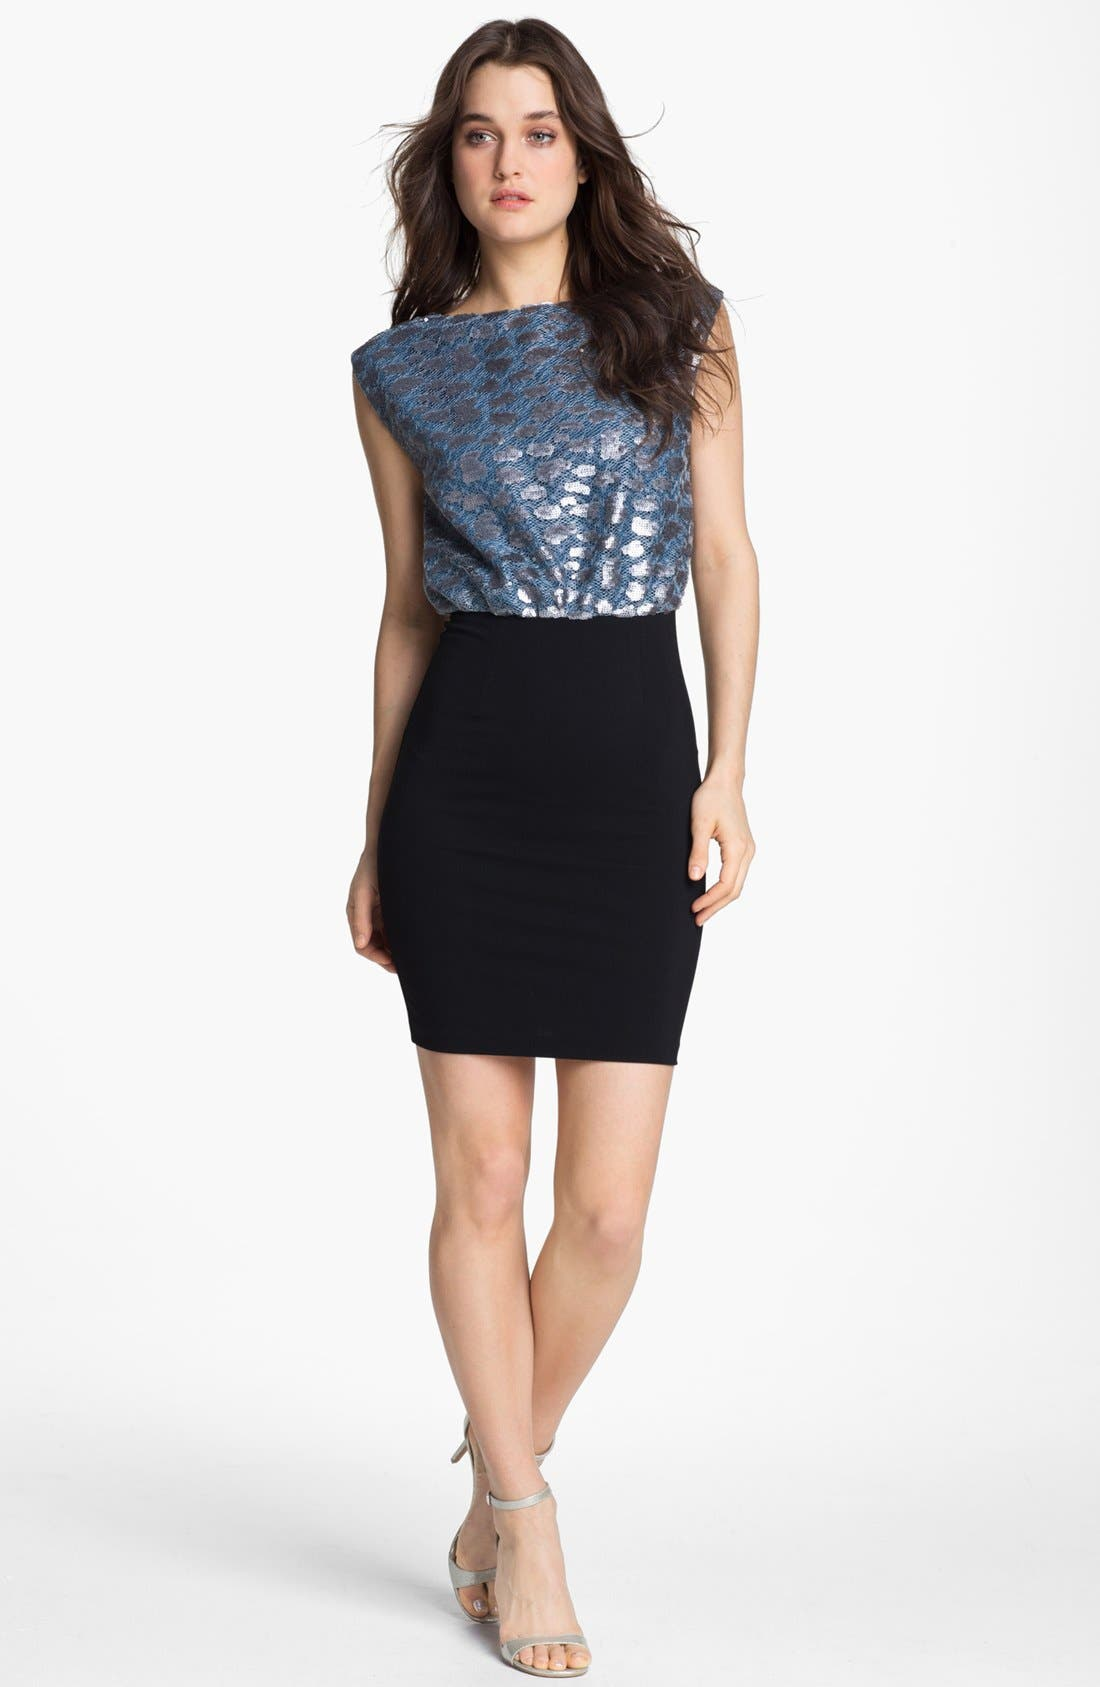 Main Image - ERIN erin fetherston Metallic Blouson Pencil Dress